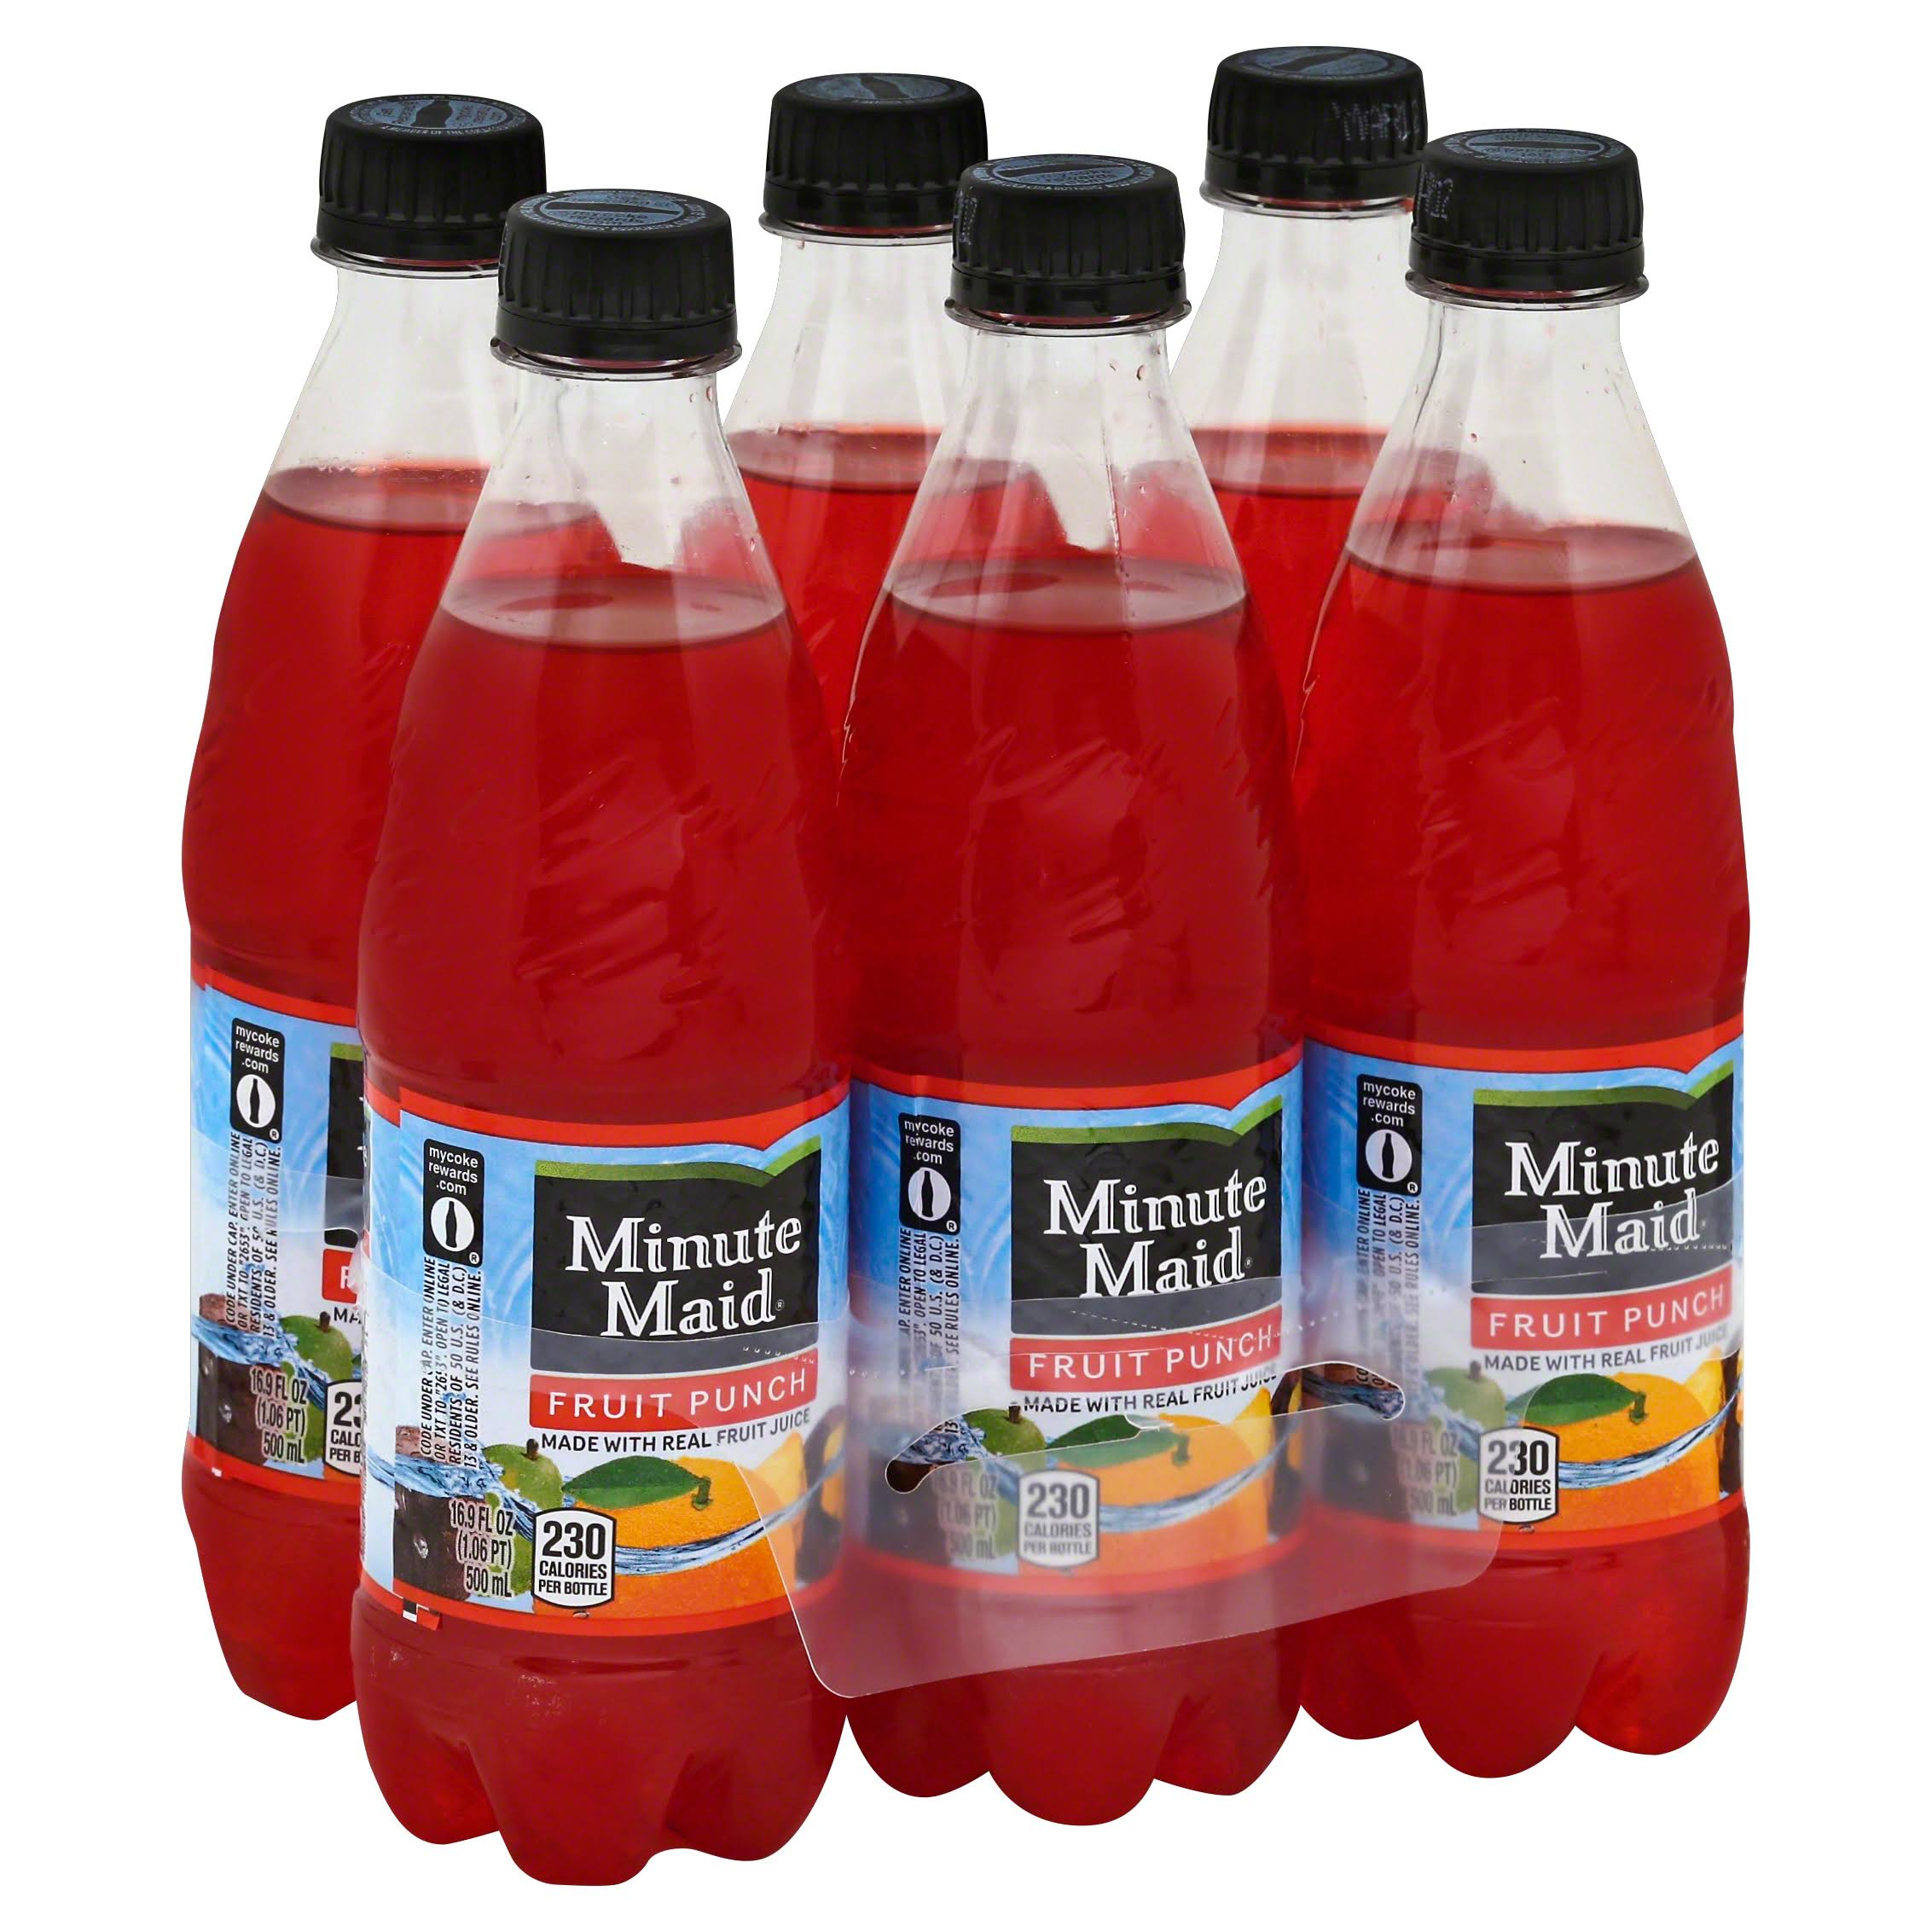 Minute Maid Juice - Fruit Punch